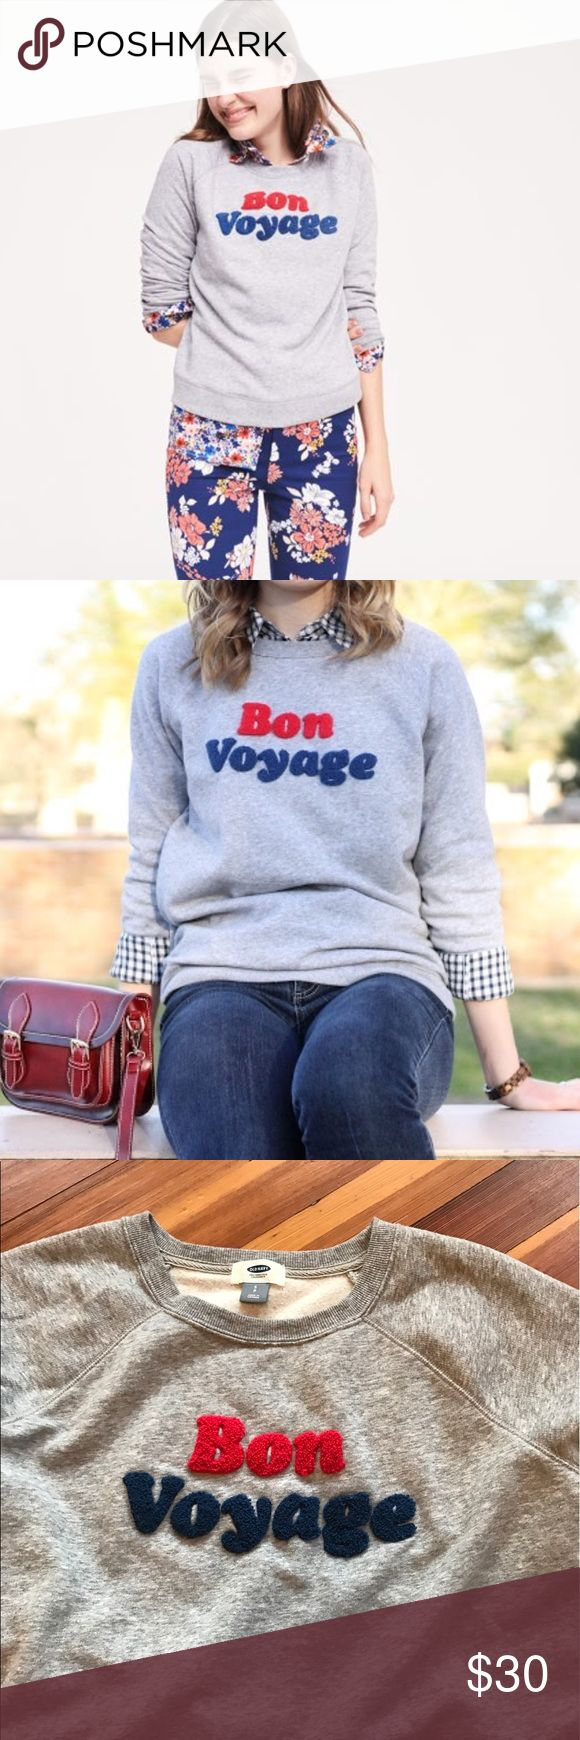 Old Navy Bon Voyage Sweatshirt Size Small Worn once and in excellent condition. No trades Old Navy Tops Sweatshirts & Hoodies